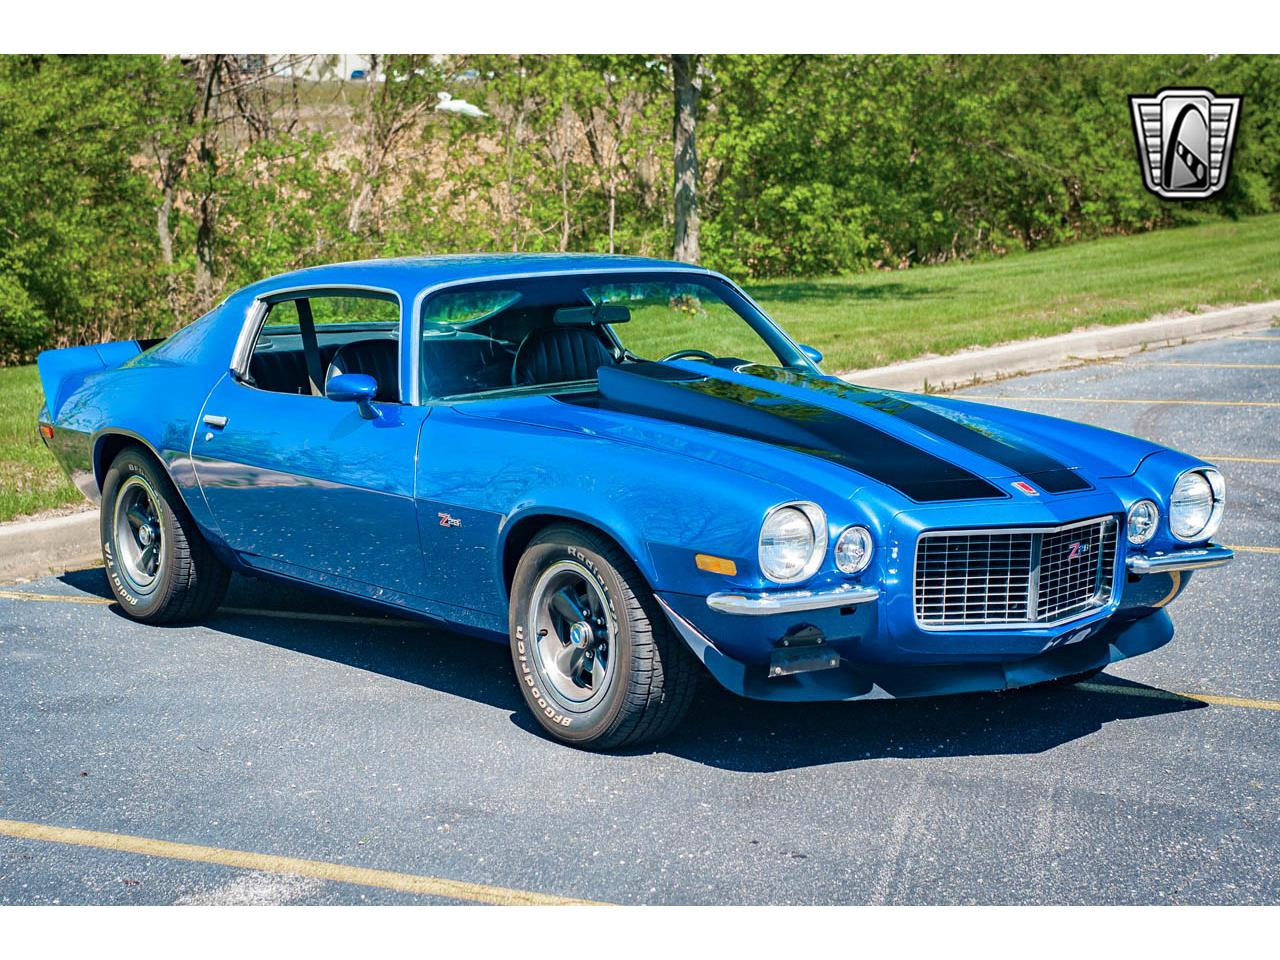 Large Picture of Classic '71 Camaro located in Illinois - $35,995.00 Offered by Gateway Classic Cars - St. Louis - QB8S